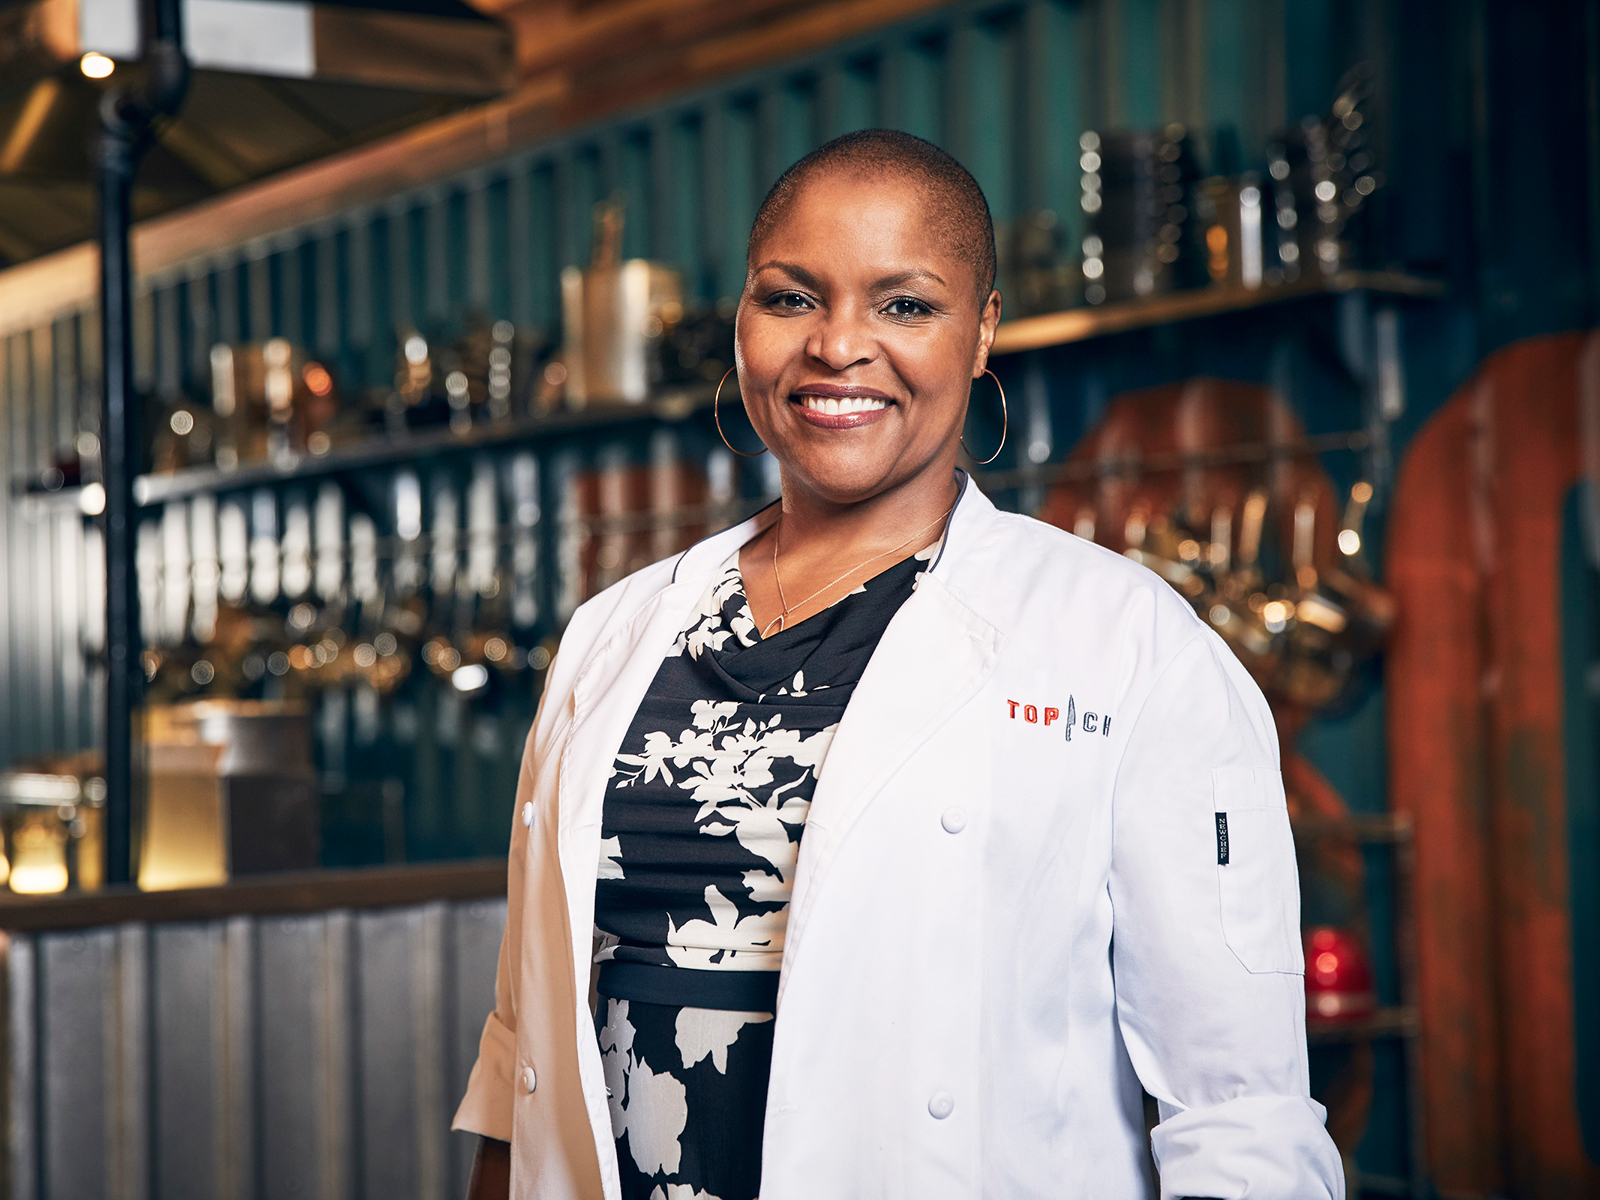 Pasta Shop Oakland Top Chef S Tanya Holland On That Tense Judges Table